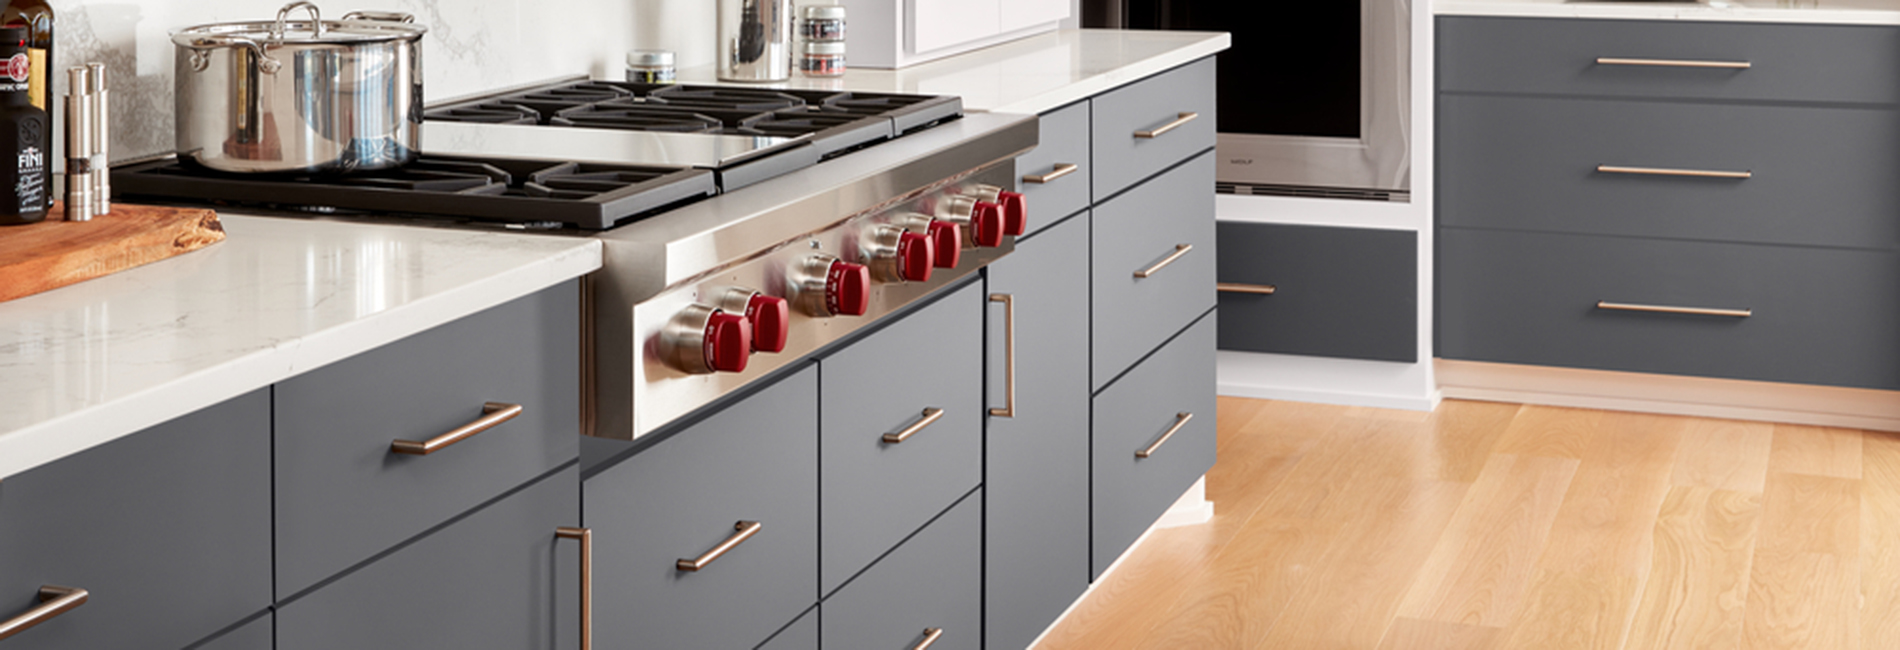 J0757 Bianco Dover and J0724 Grigio Bromo Kitchen countertop and cabinets with stove and stockpot